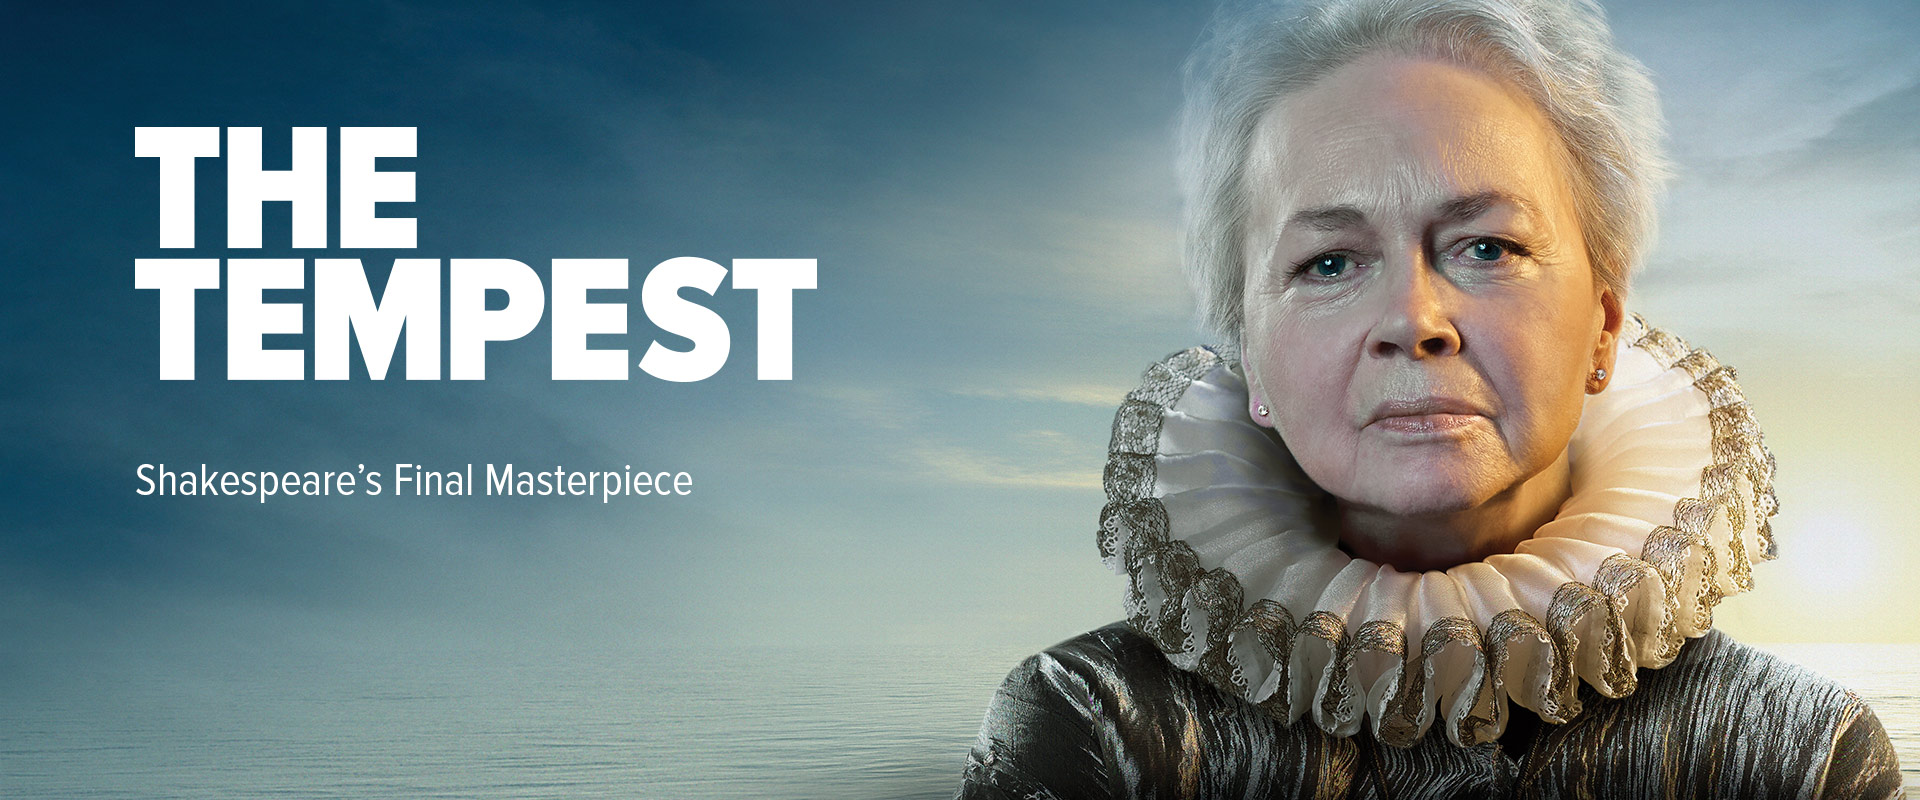 Publicity image from The Tempest